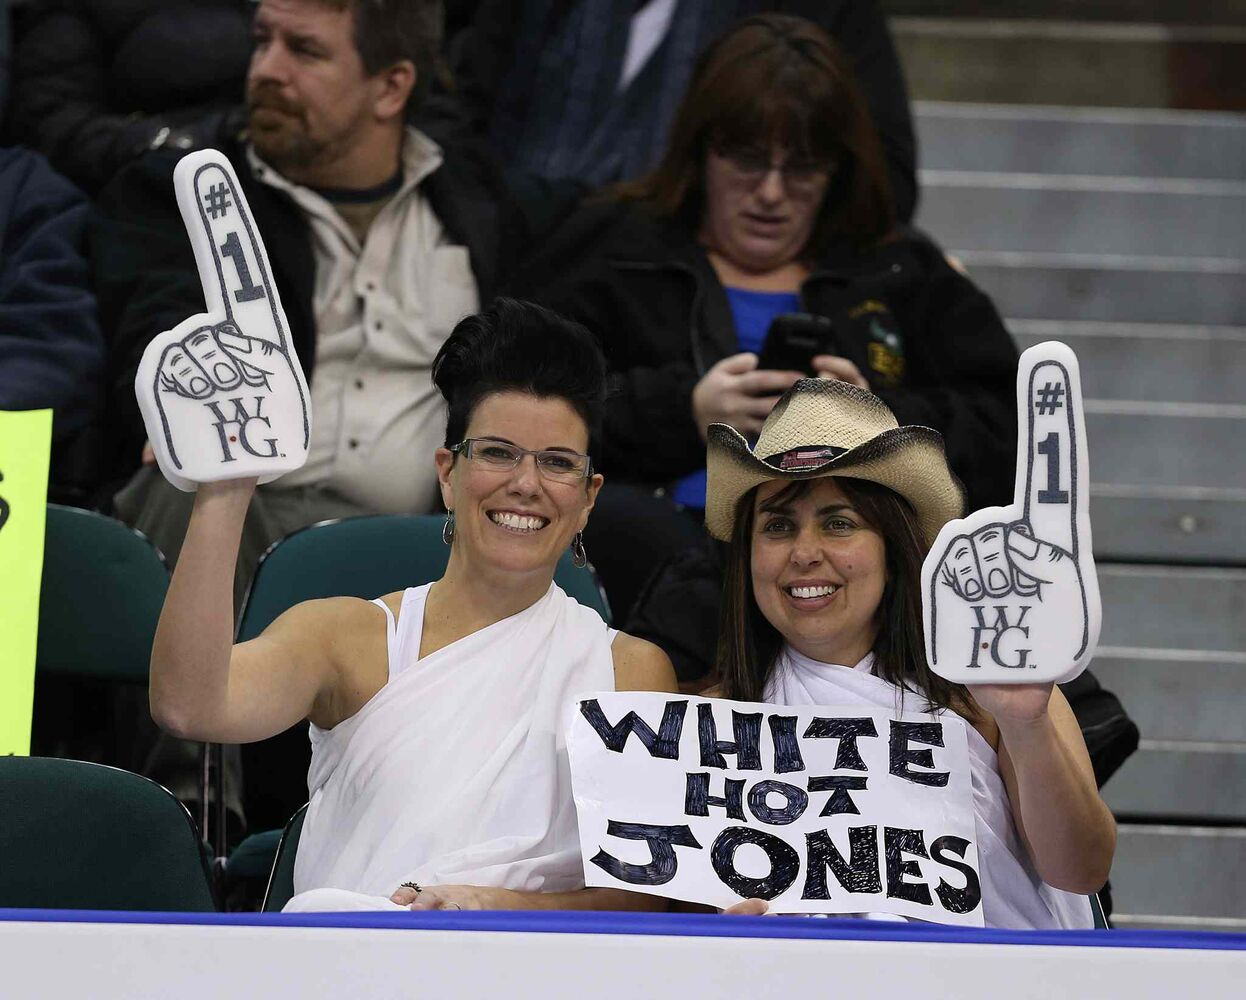 Fans cheer on Jennifer Jones and her team as they defeated Sherry Middaugh in the women���s final of Roar of the Rings curling at the MTS Centre on Sat., Dec. 7, 2013 to win the right to represent Canada at the Winter Olympics in Sochi, Russia, in February. Photo by Jason Halstead/Winnipeg Free Press (Jason Halstead / Winnipeg Free Press)